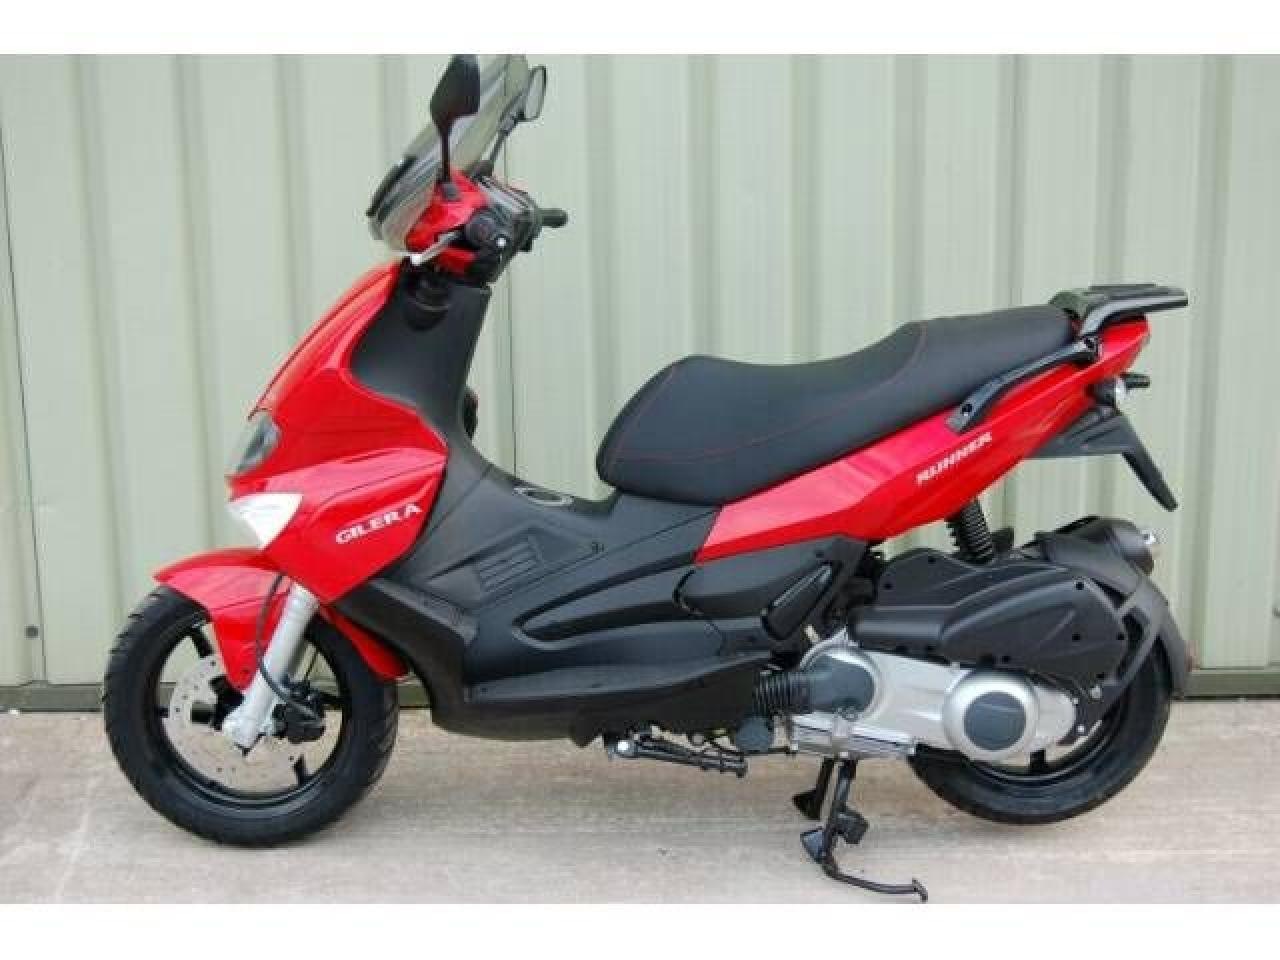 gilera runner st 200 pics specs and list of seriess by year. Black Bedroom Furniture Sets. Home Design Ideas